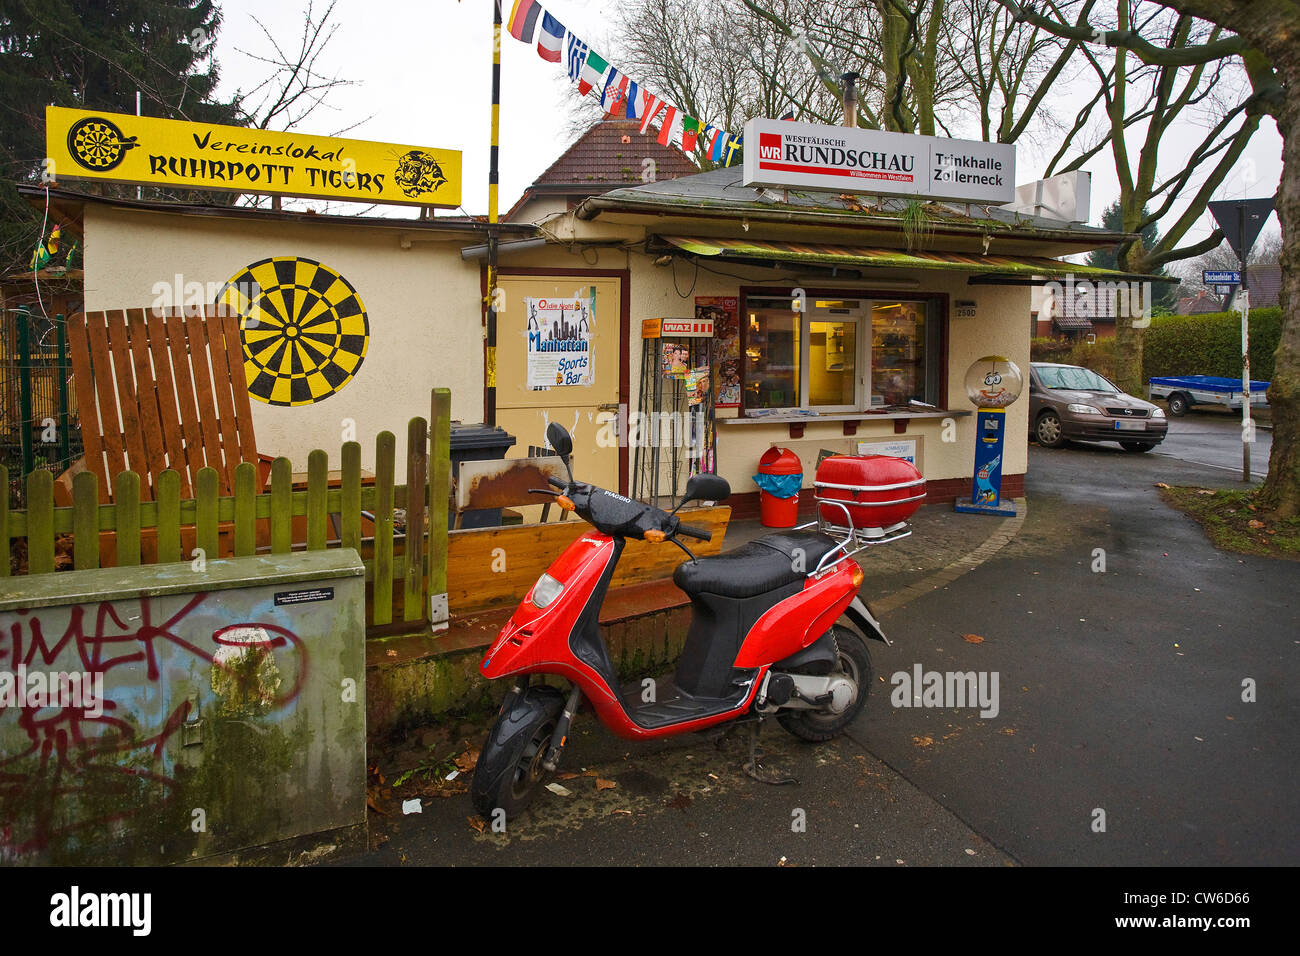 typical kiosk in the Ruhr Area, Germany, North Rhine-Westphalia, Ruhr Area, Dortmund - Stock Image